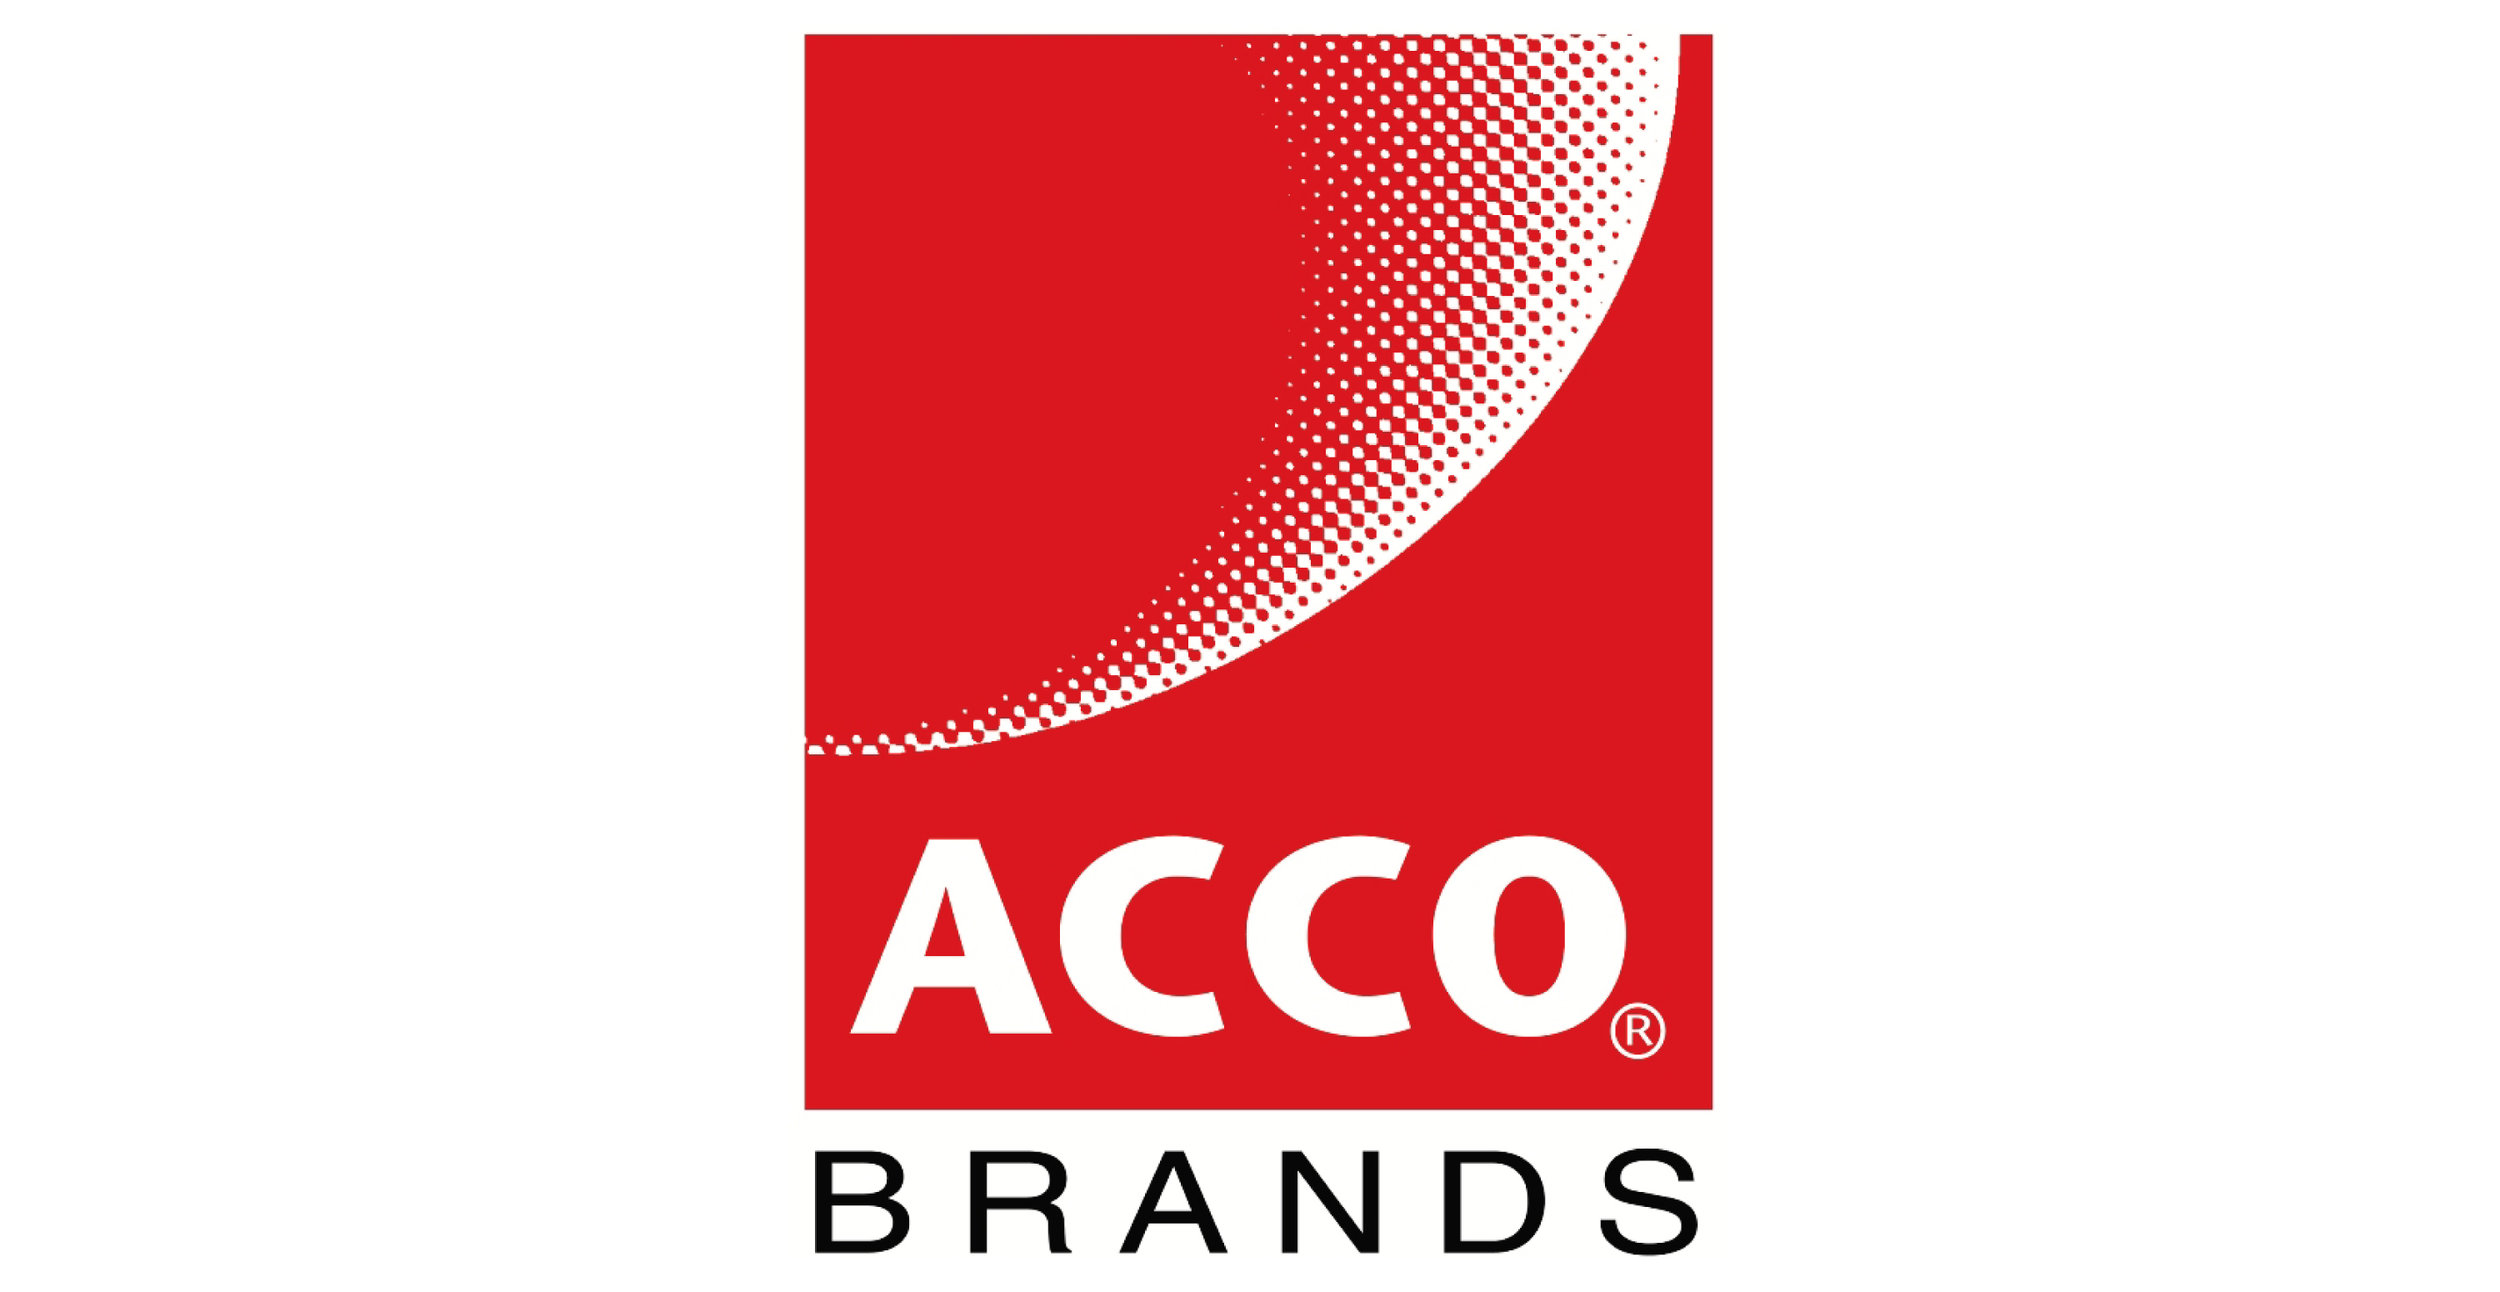 18-Squarespace-Work_Experience-Logos-ACCO_Brands.jpg